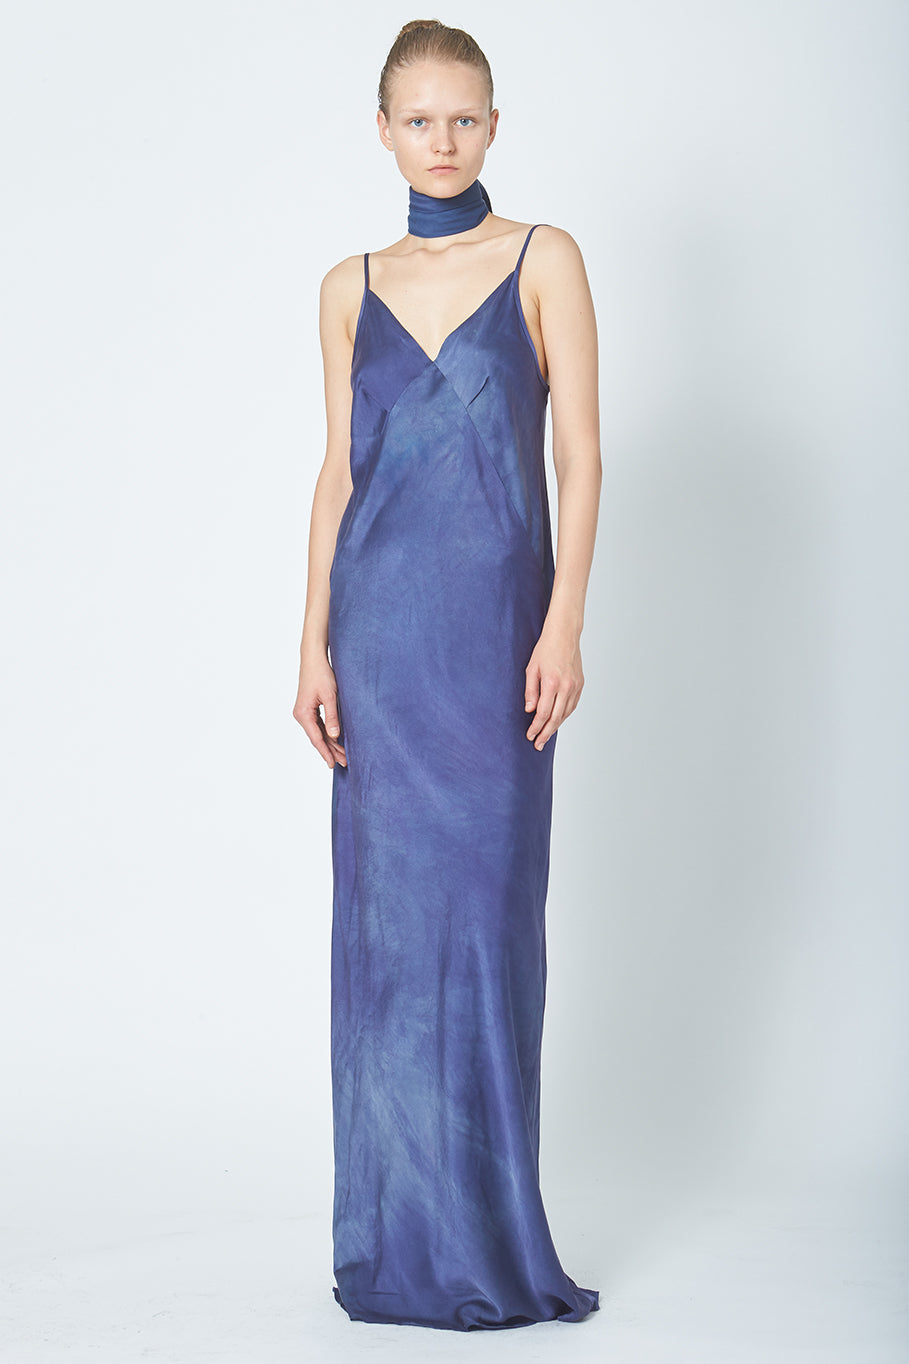 KES Elongated Triangle Slip Dress SS19